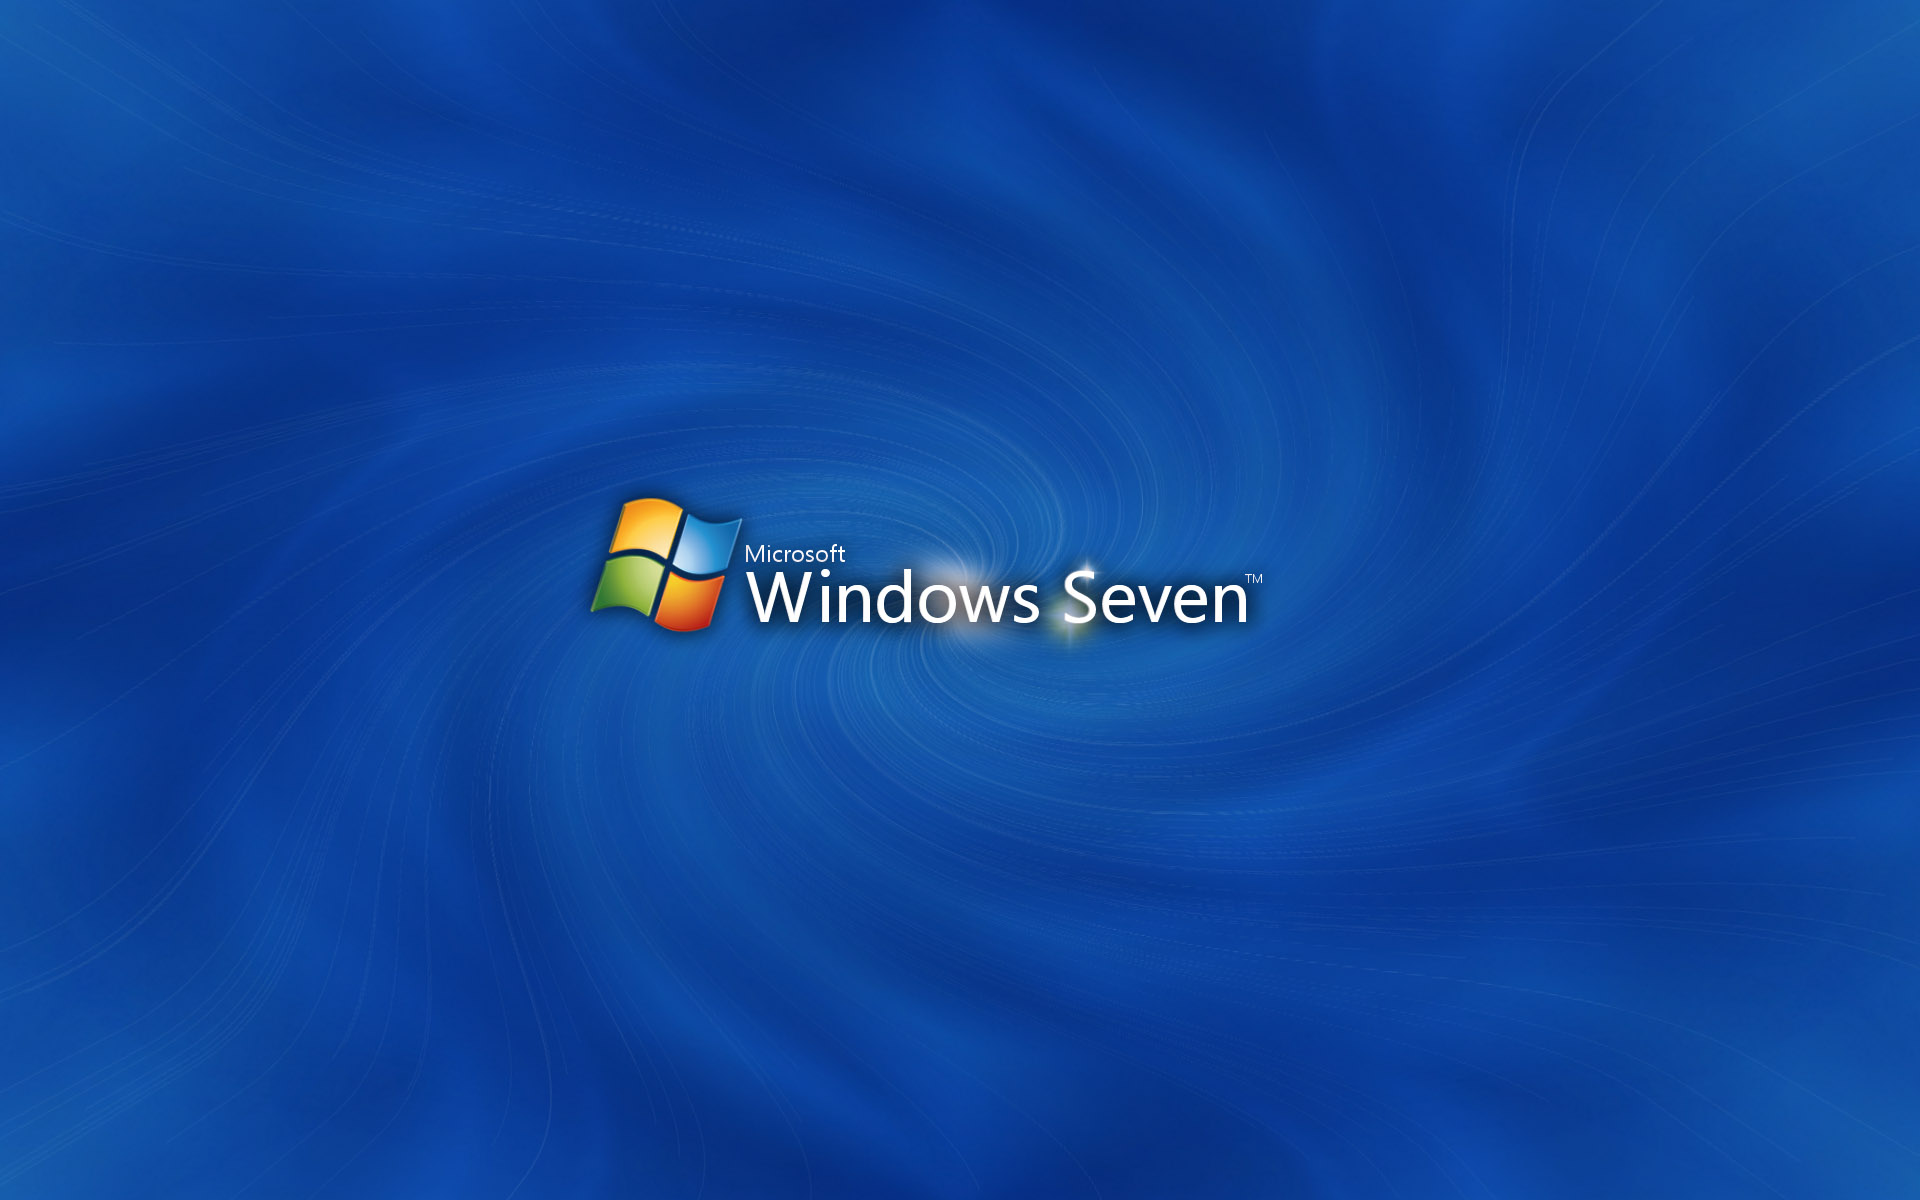 Windows Desktop Wallpaper 9188